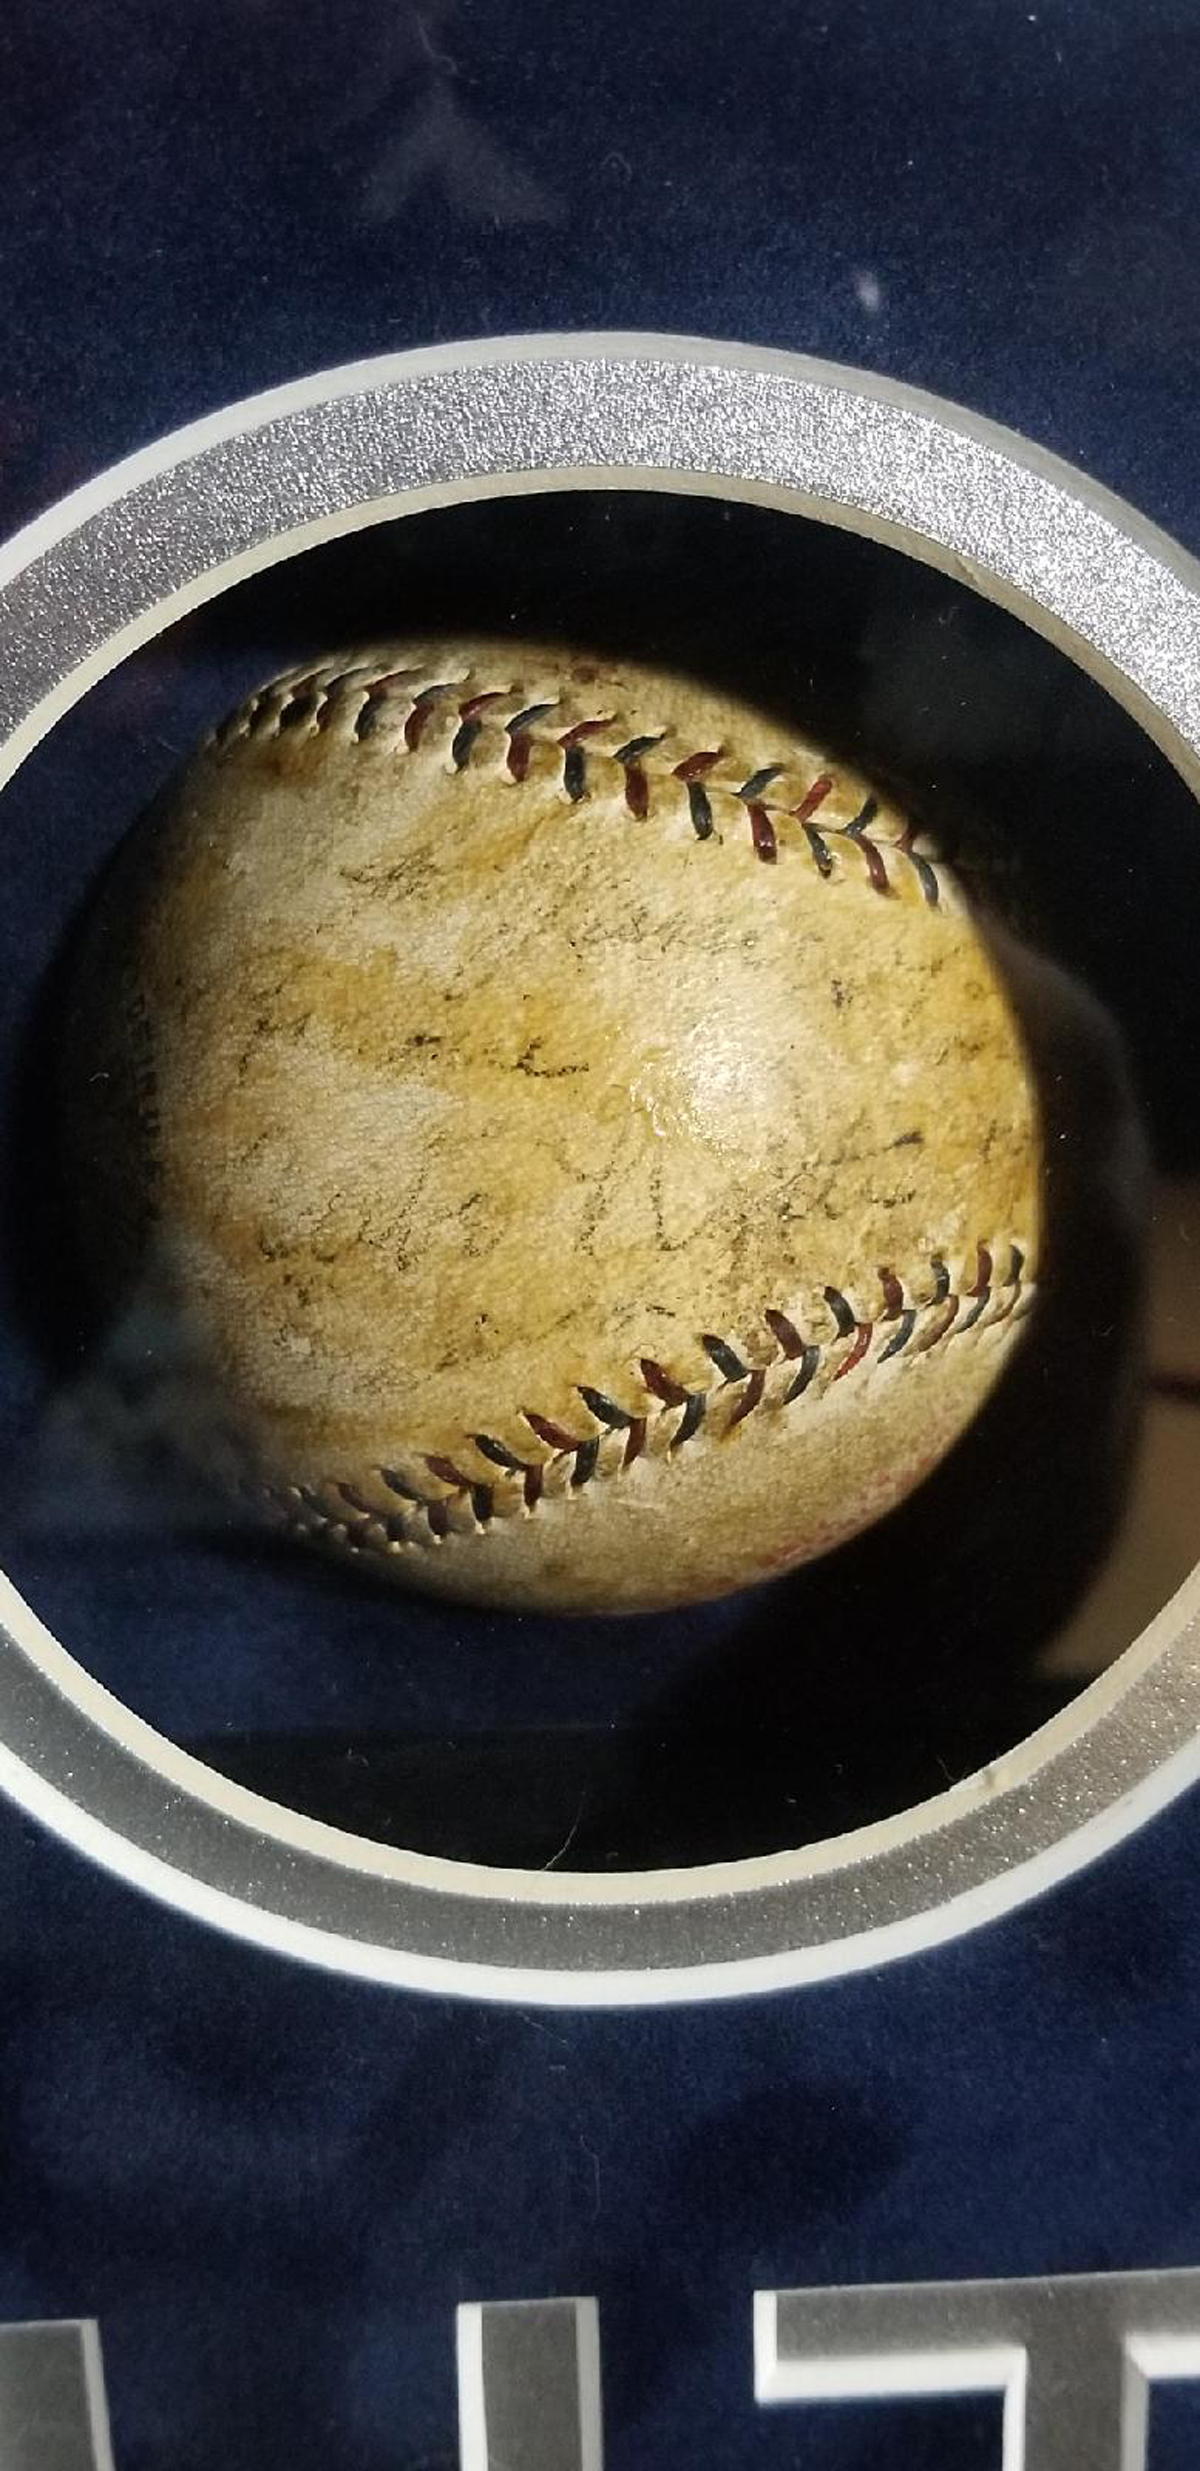 Lot Detail Extremely Rare Signed Babe Ruth Baseball Autographed